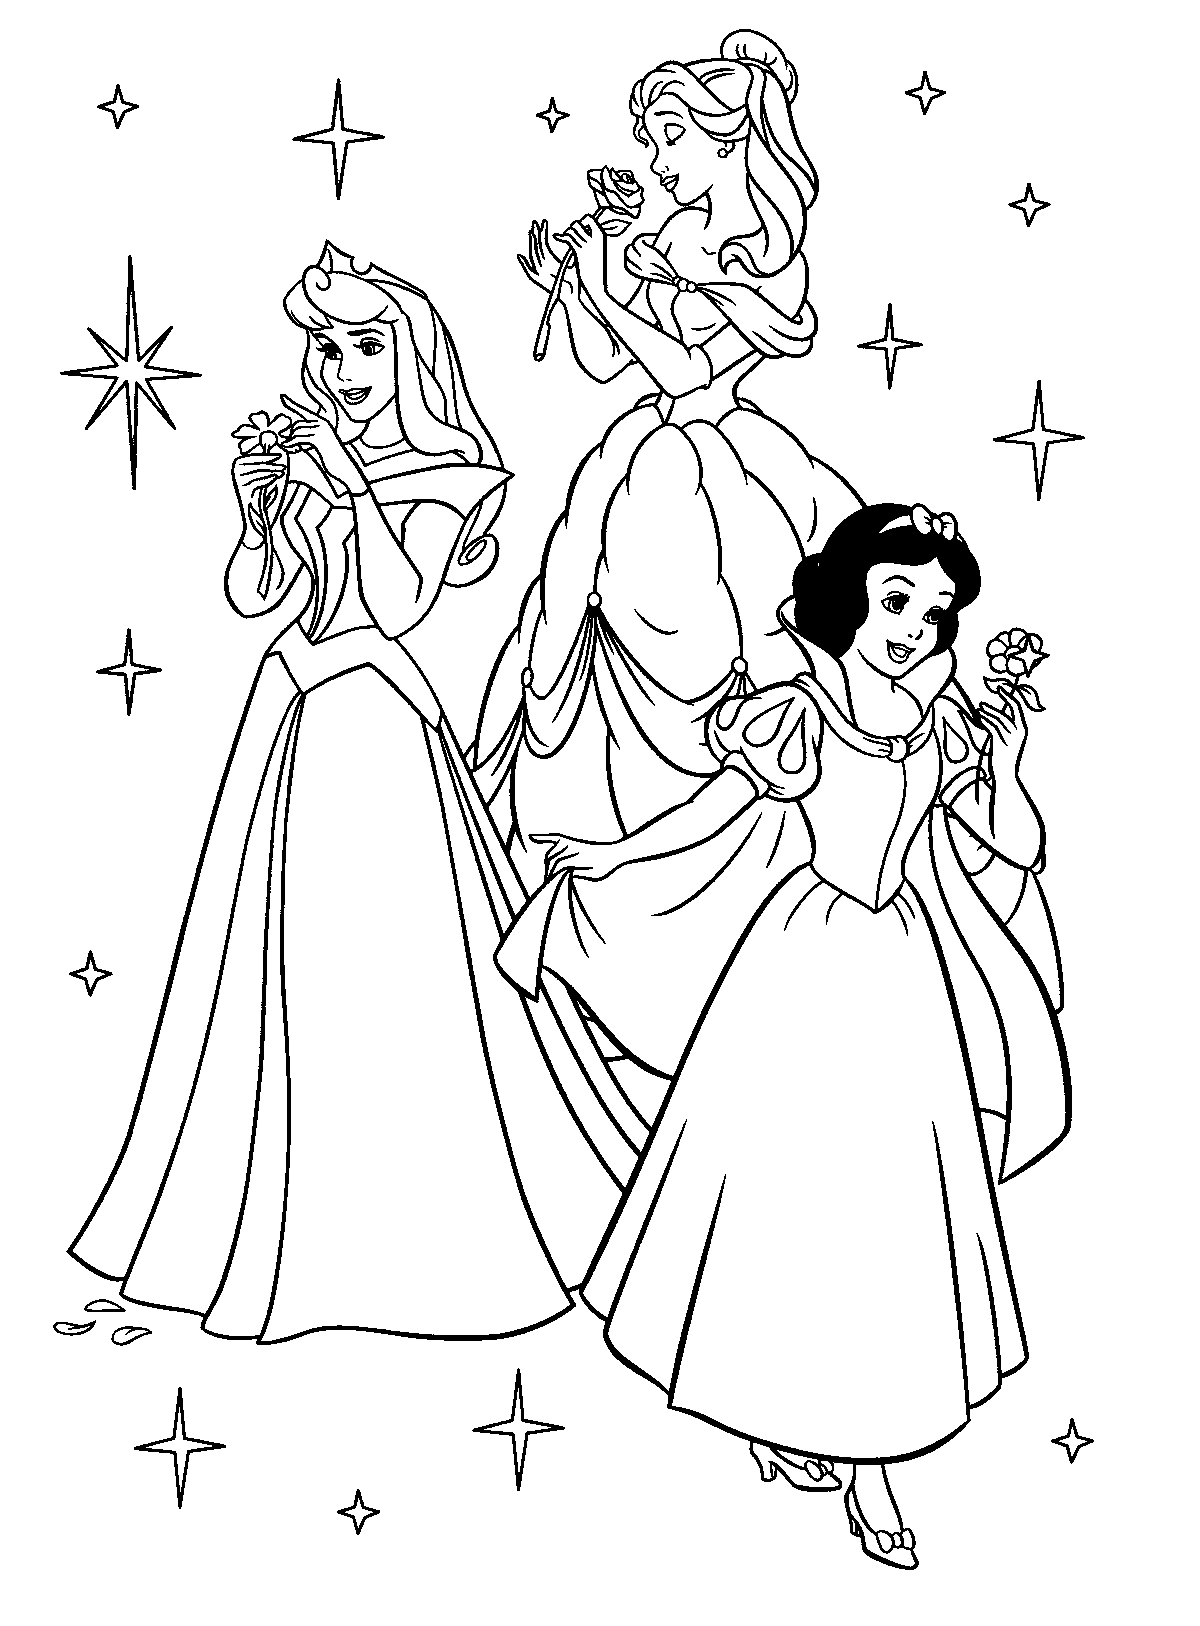 princess images for coloring disney princess tangled coloring pages at getcoloringscom princess images for coloring